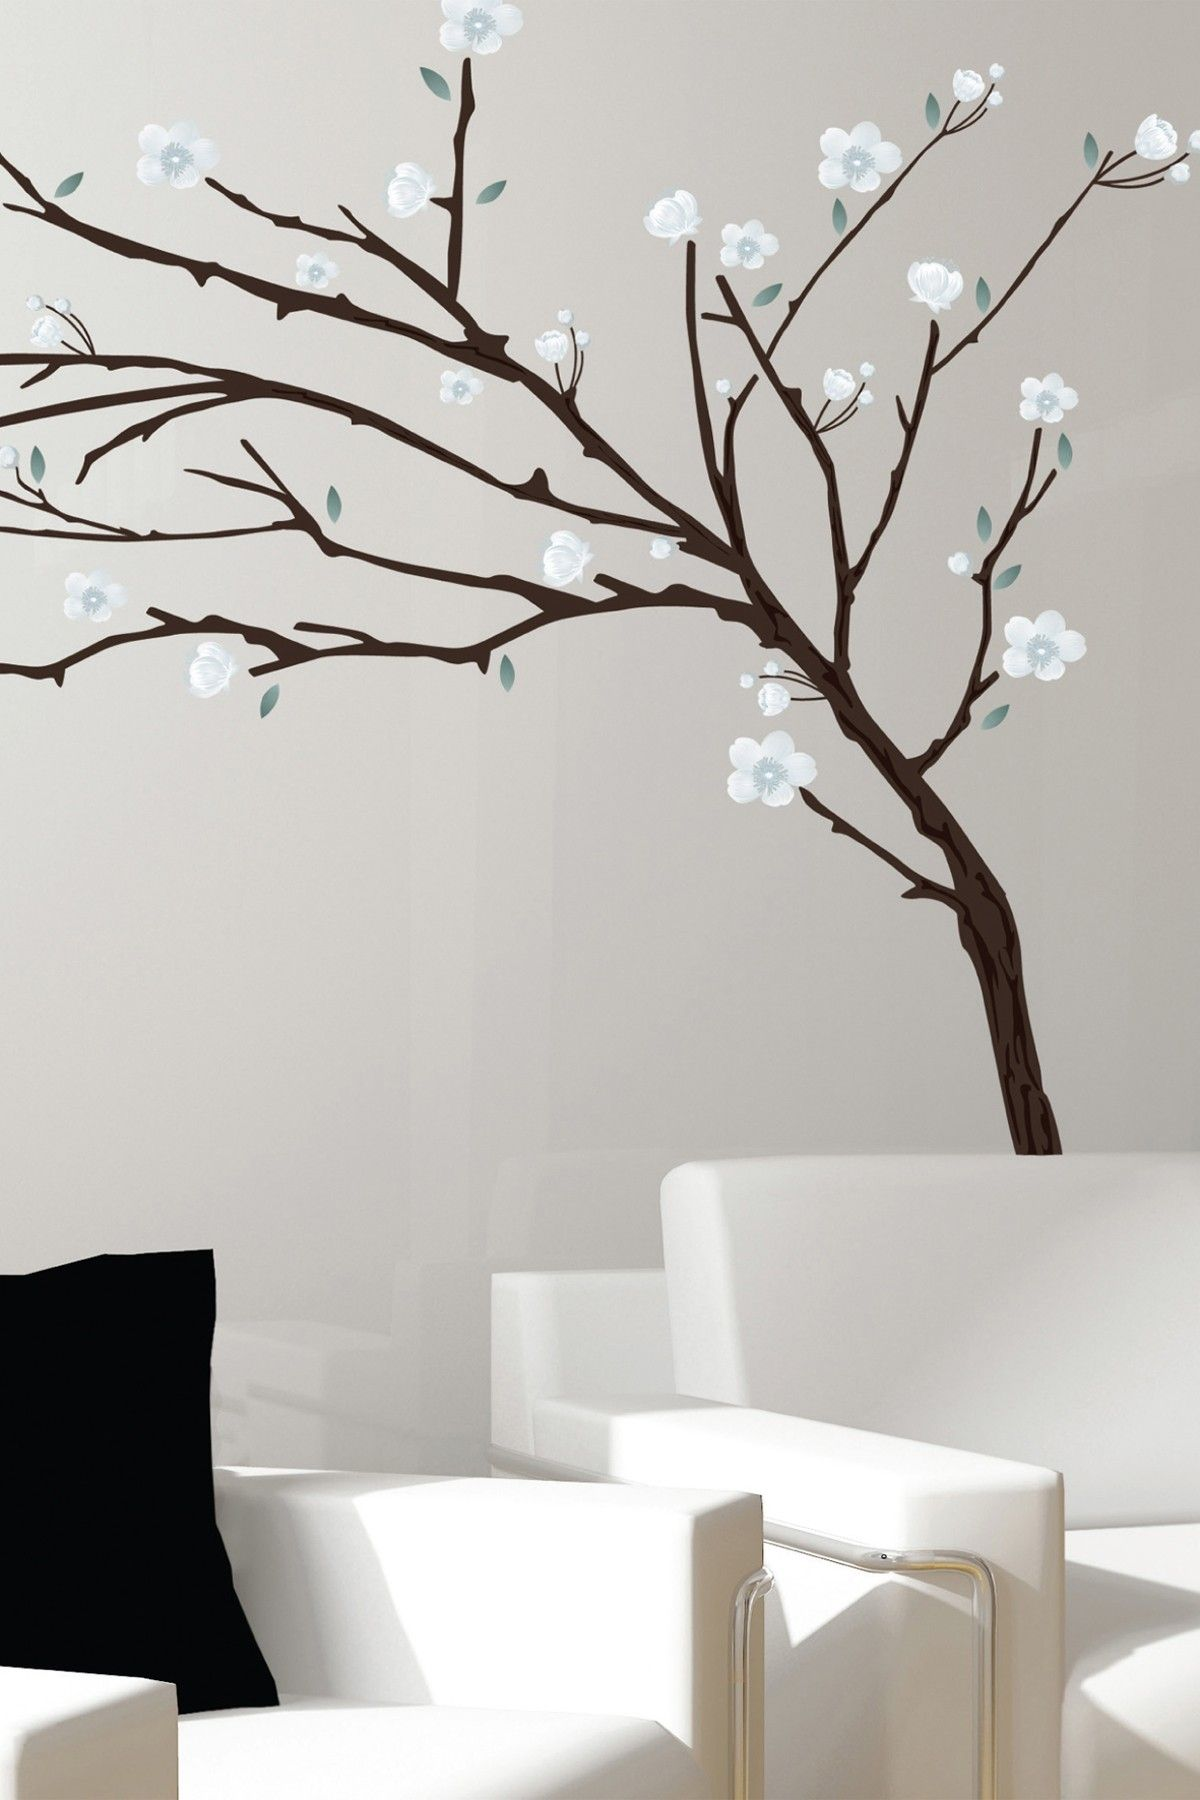 Art Applique Branches Removable Wall Decal Set Wall Sticker